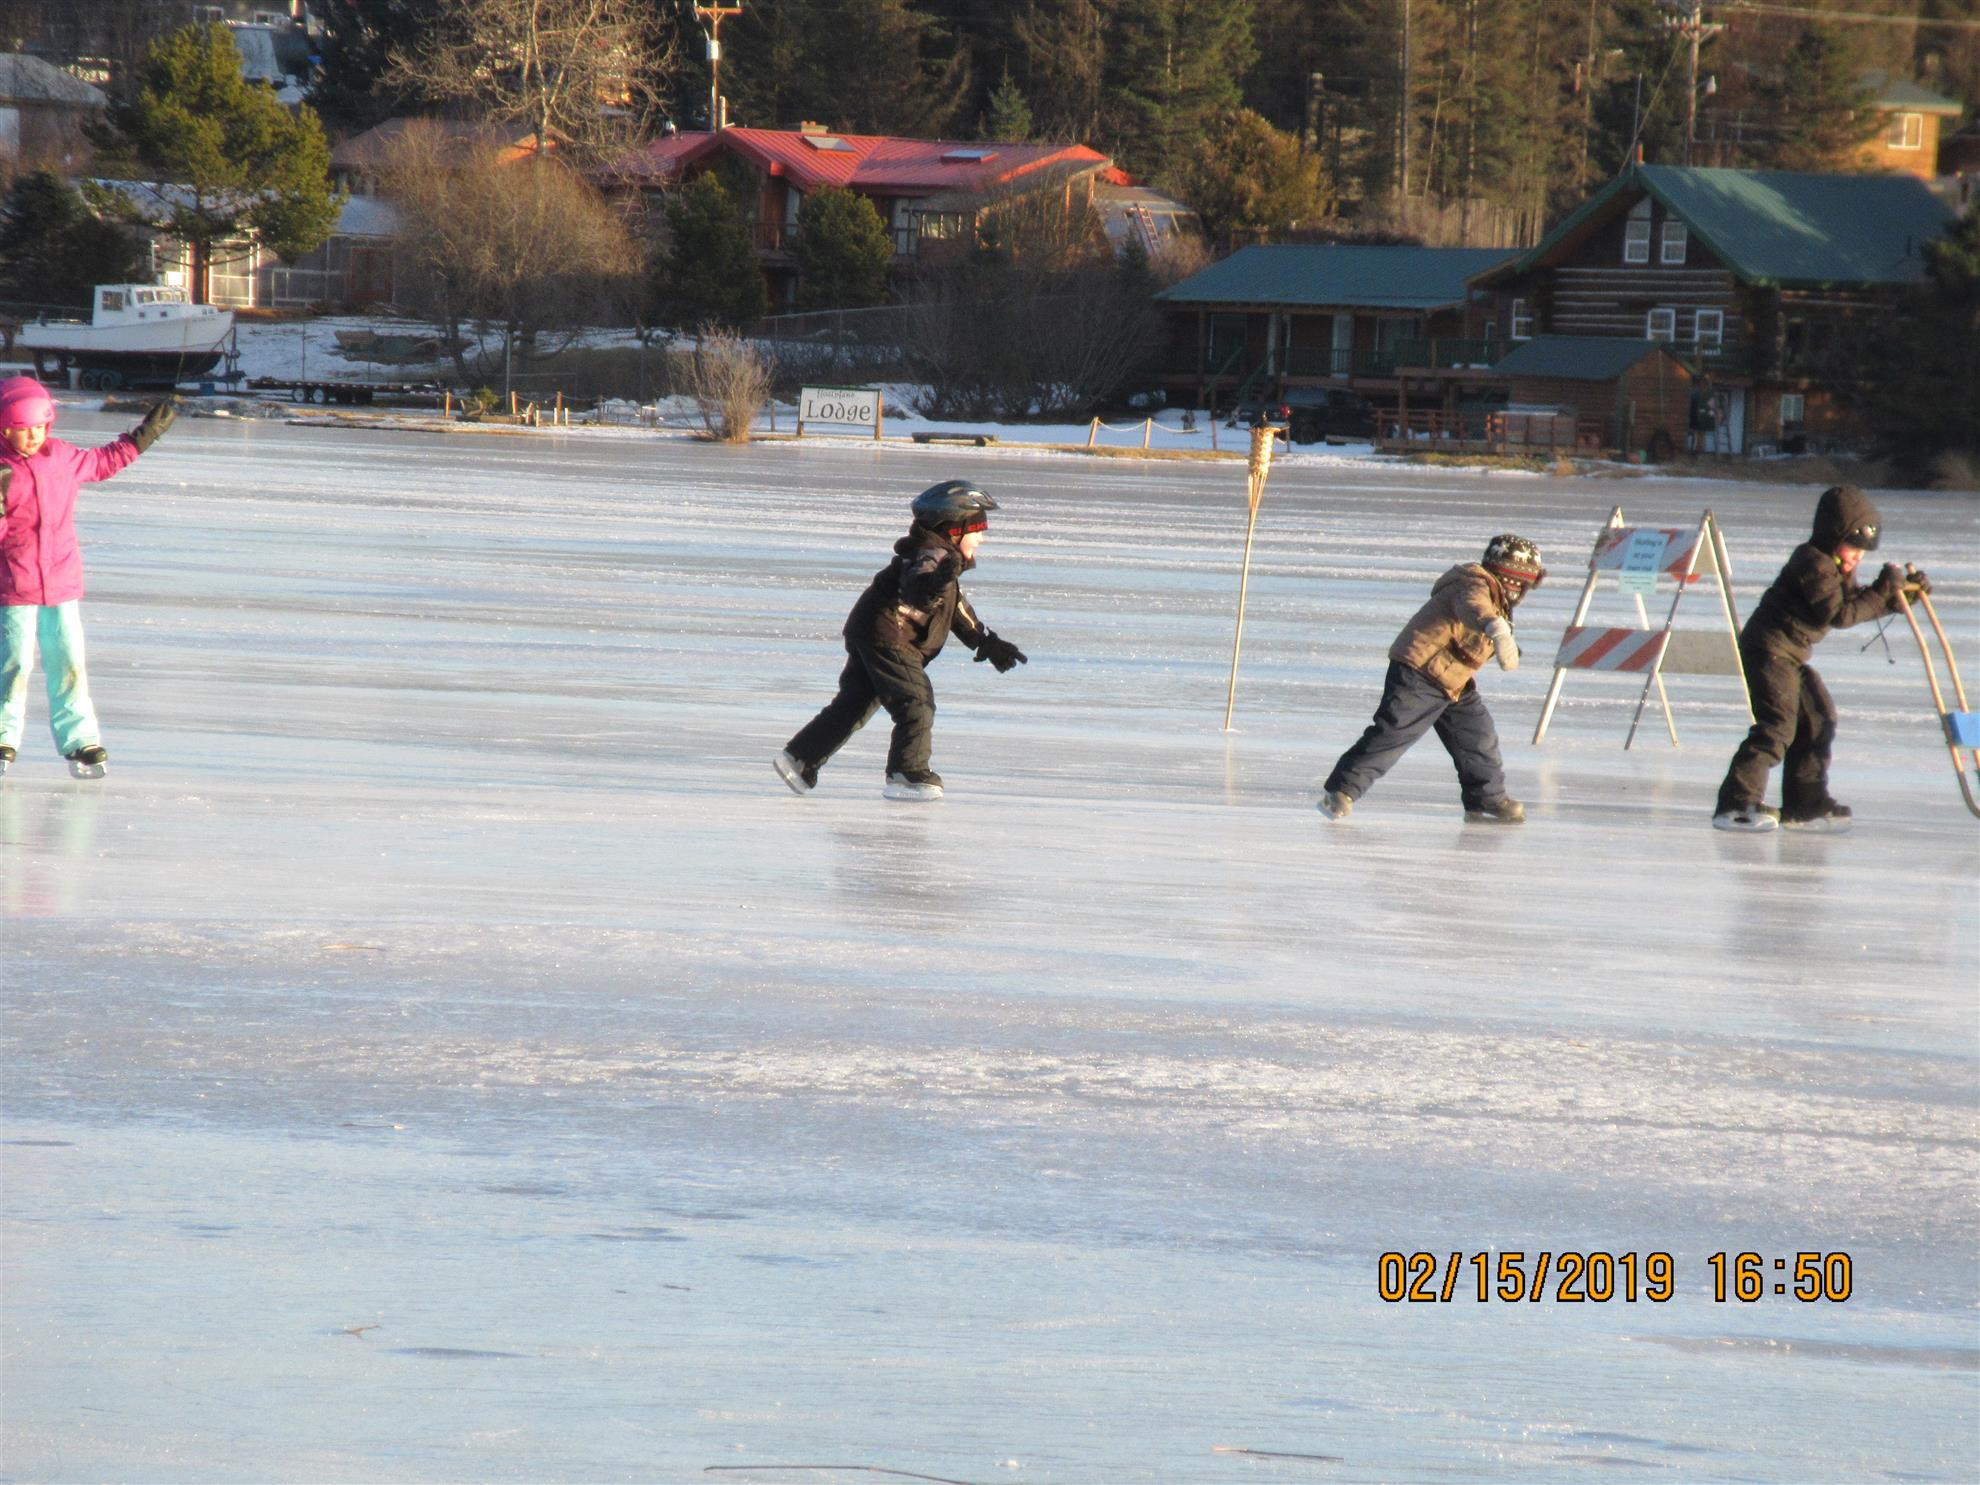 ... co-sponsored Community Ice Skating event at Ben Walters Park on Friday e6f5aa55ef9